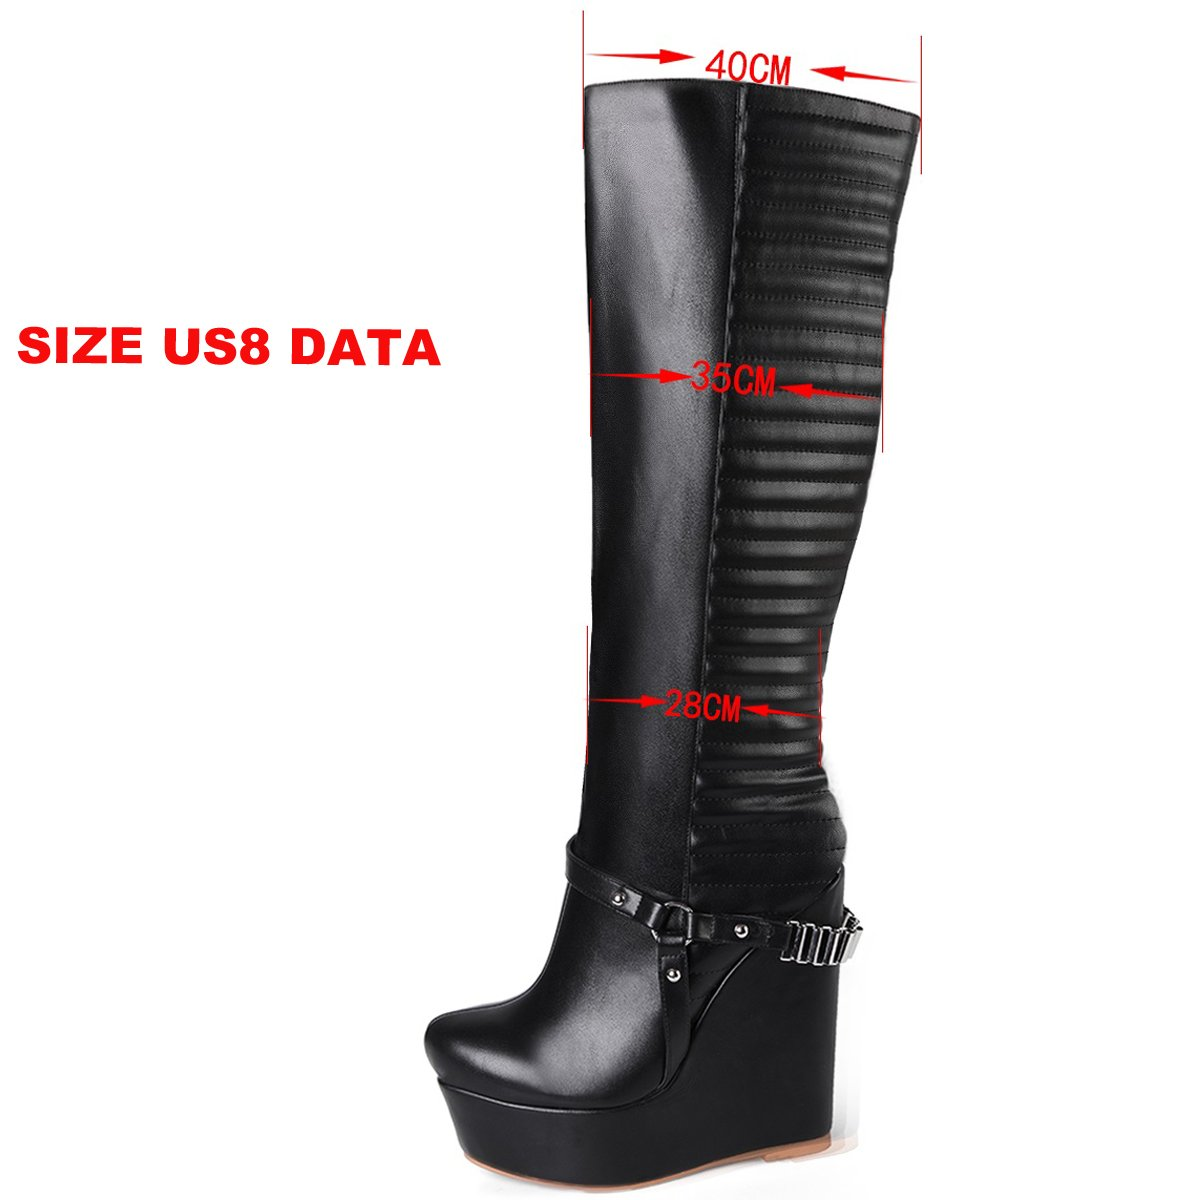 onlymaker Women's Fashion High Wedge Heel Fashion Knee High Boots Handmade for Wedding Party Dress Shoes B076QCCZCY 10 B(M) US|Black